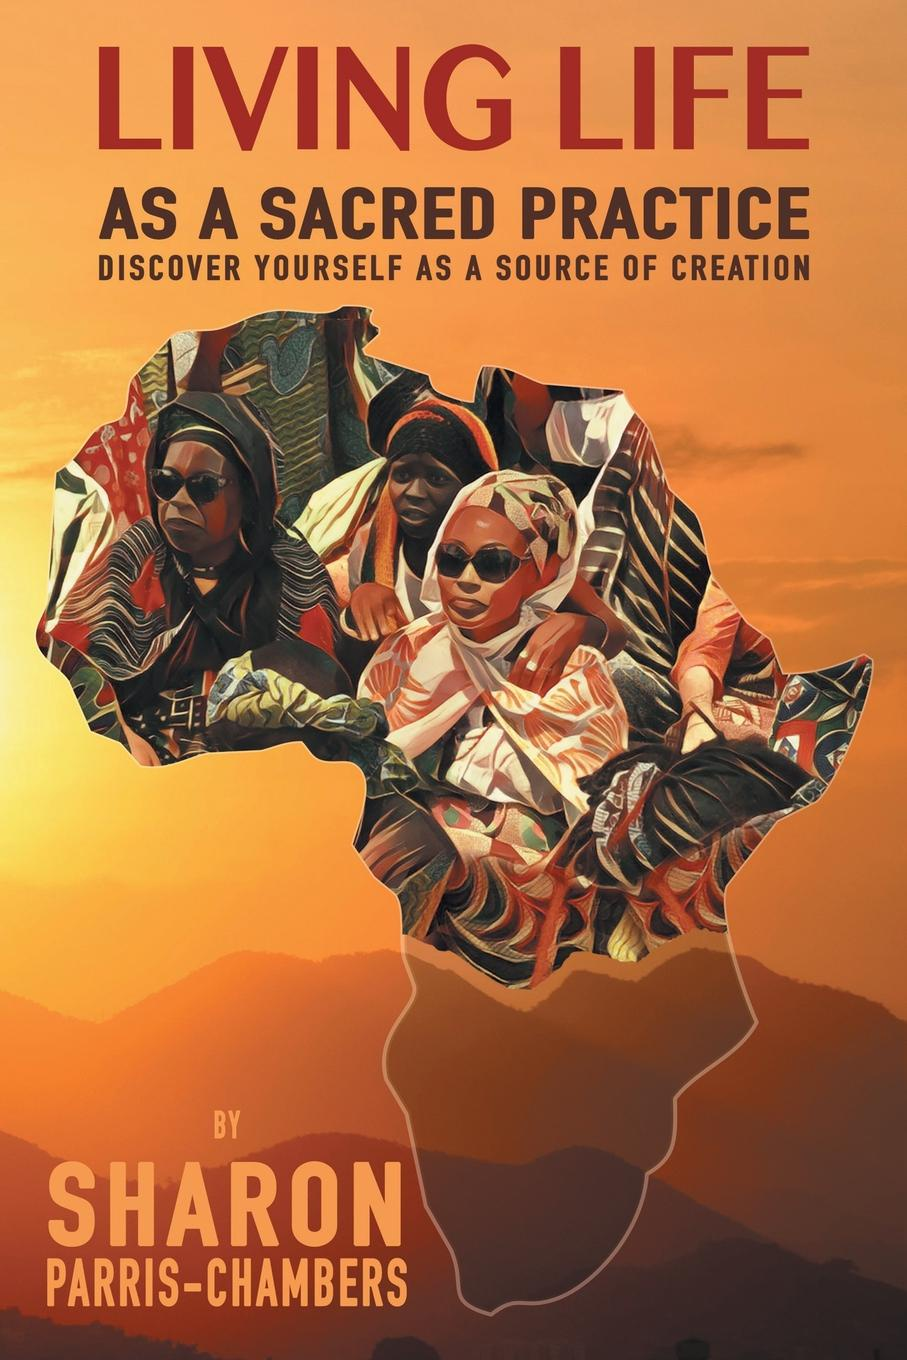 Sharon Parris-Chambers. Living Life as a Sacred Practice. Discover Yourself as a Source of Creation